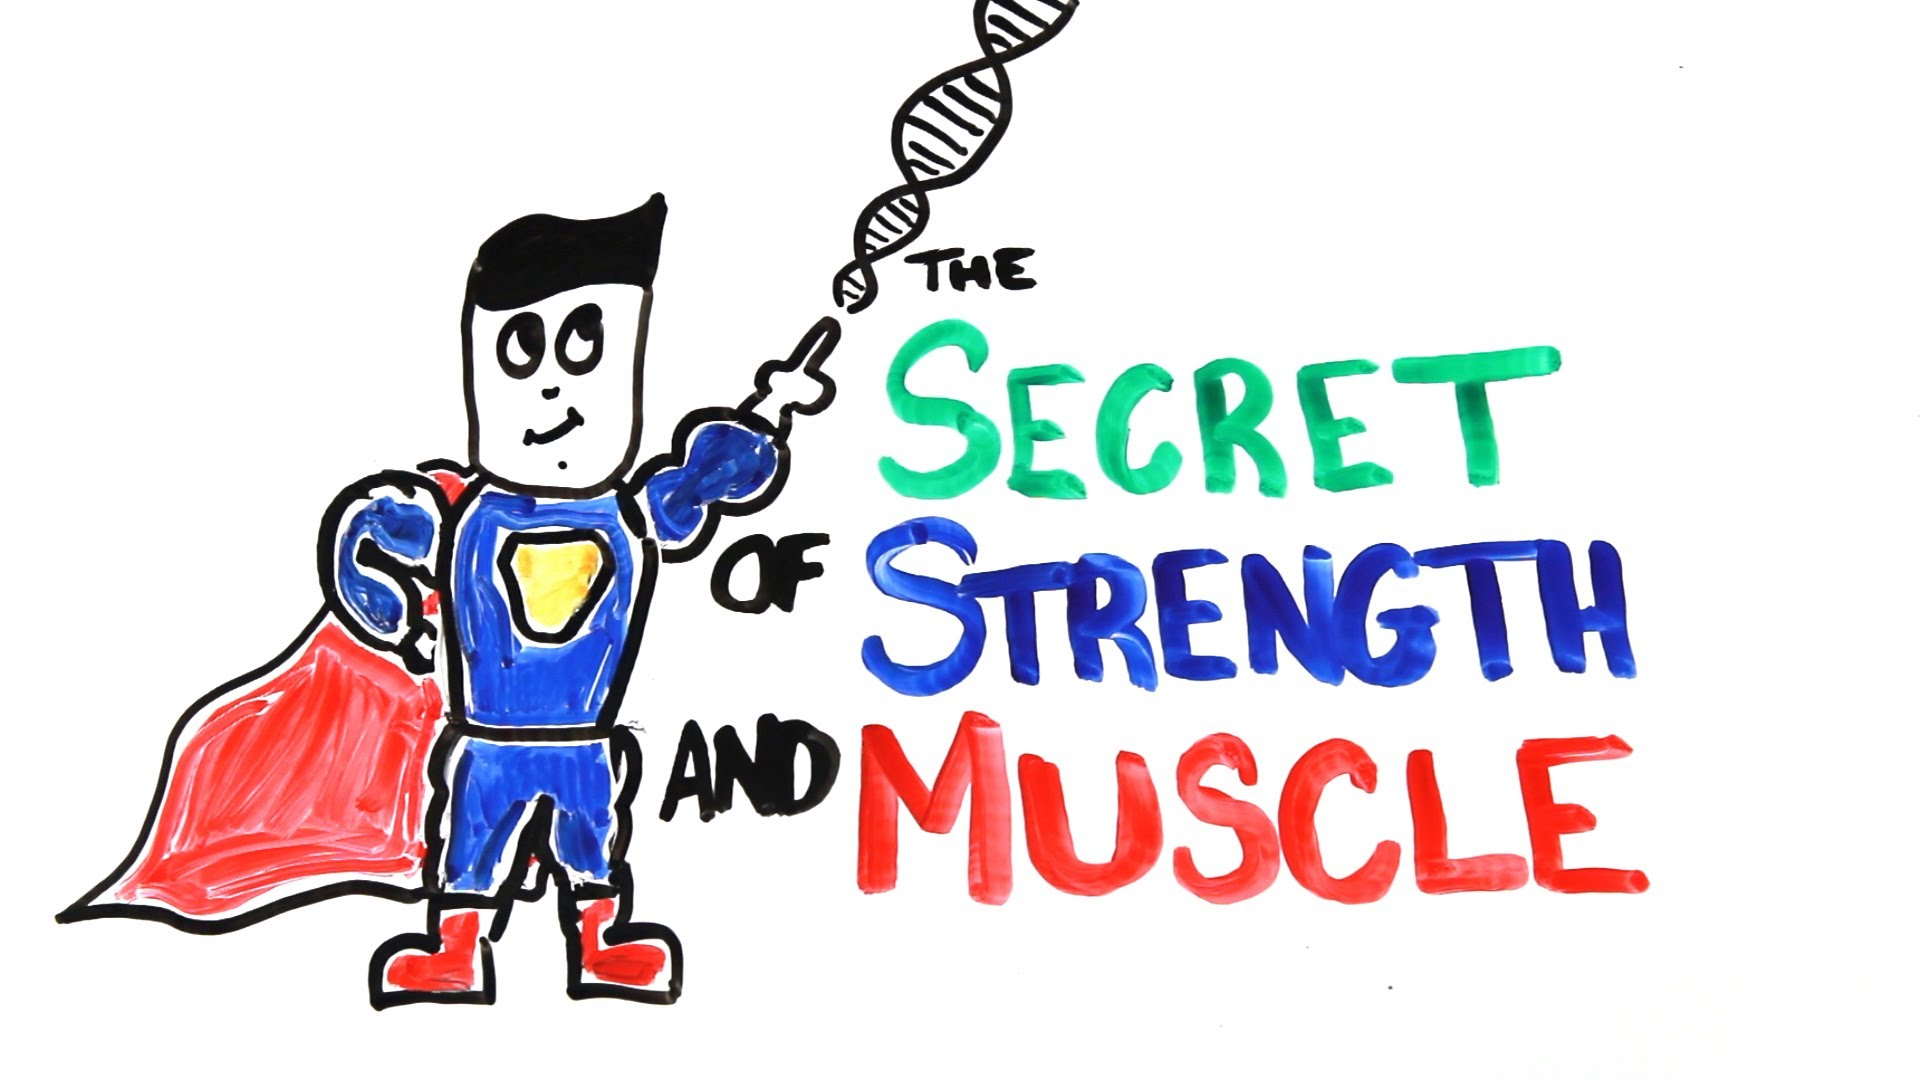 1920x1080 The Scientific Secret Of Strength And Muscle Growth